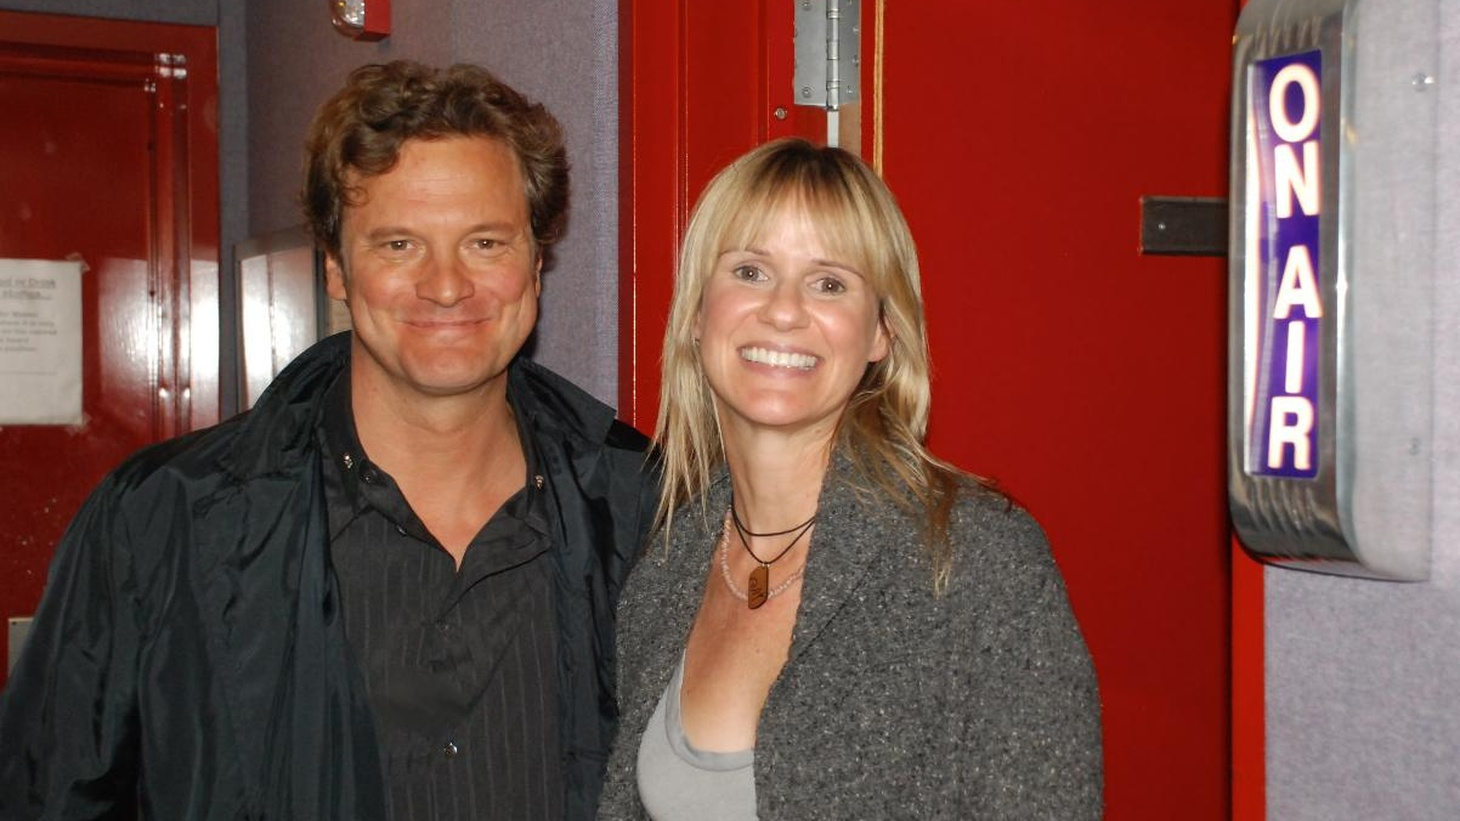 """Actor Colin Firth is winning accolades for his role as King George the XI in """"The King's Speech"""" and spans many genres in his Guest DJ set, from the moody jazz of Miles Davis to his favorite live act, Massive Attack. He also lets us into his personal life, from the rebellious glam rock of his youth to the White Stripes track he rocks out to on school runs with his kids."""